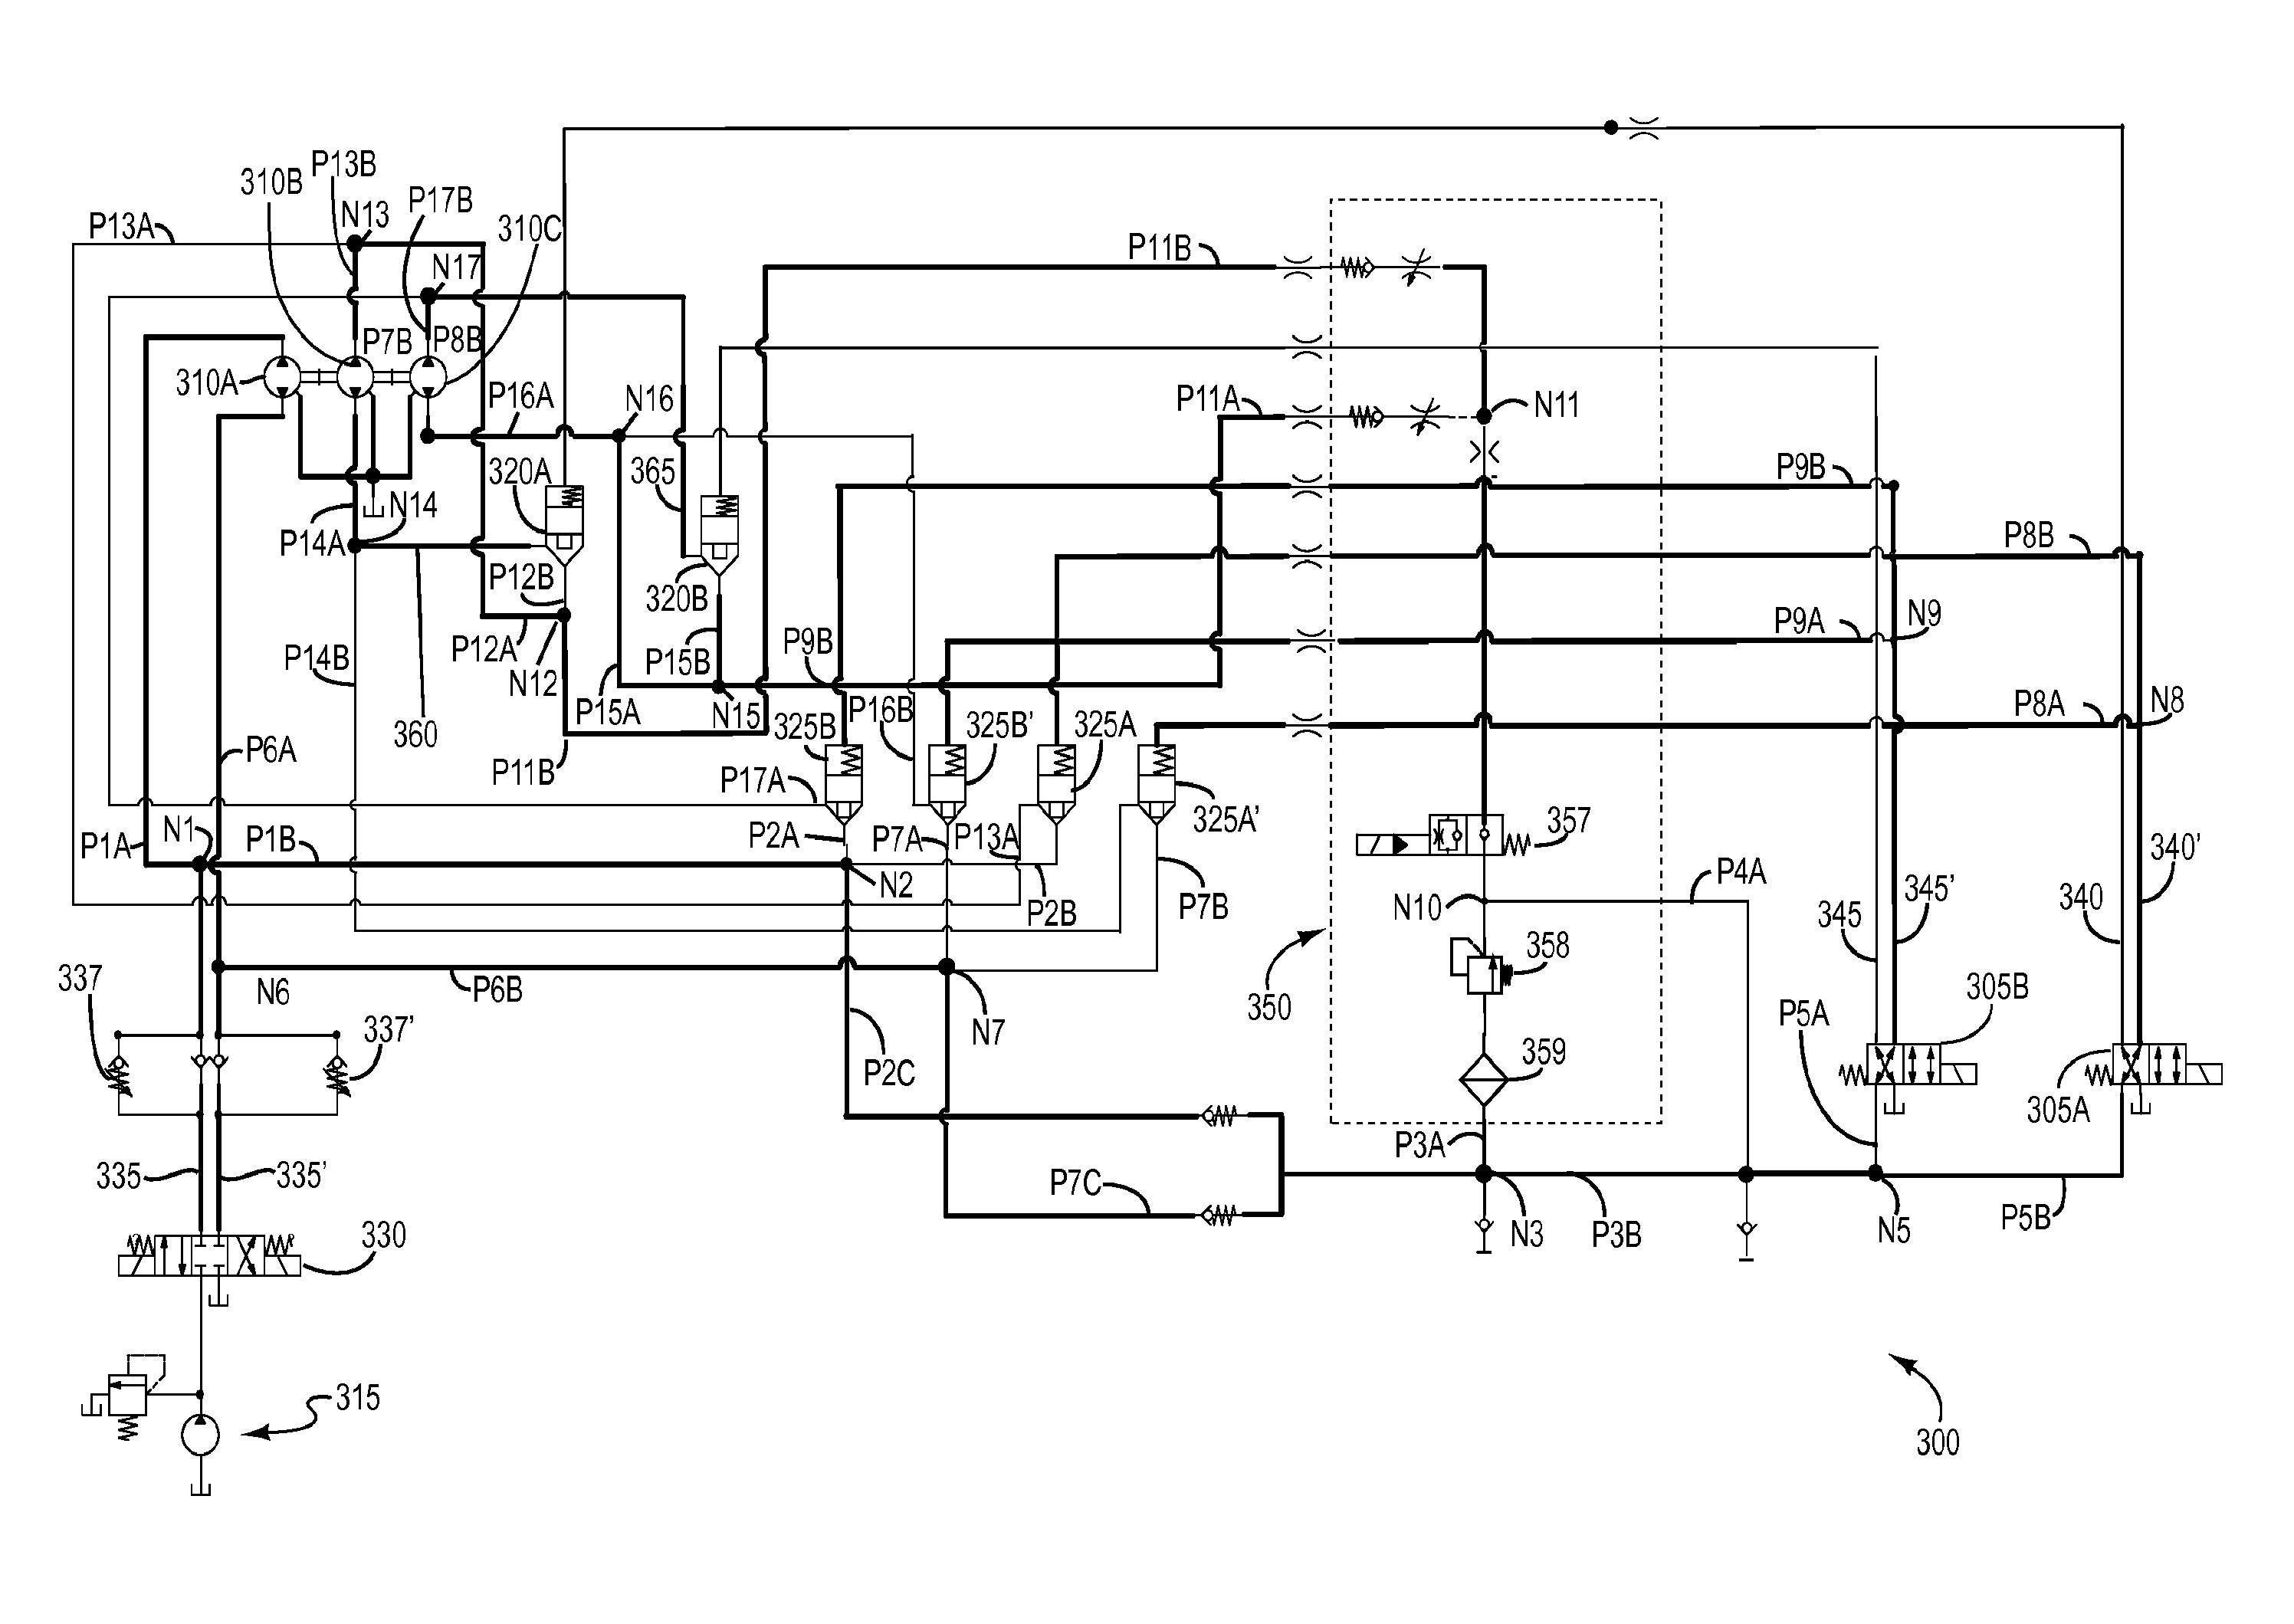 cat 325b wiring diagram box wiring diagram patent us8408328 methods of controllling hydraulic motors patent drawing caterpillar wiring diagram